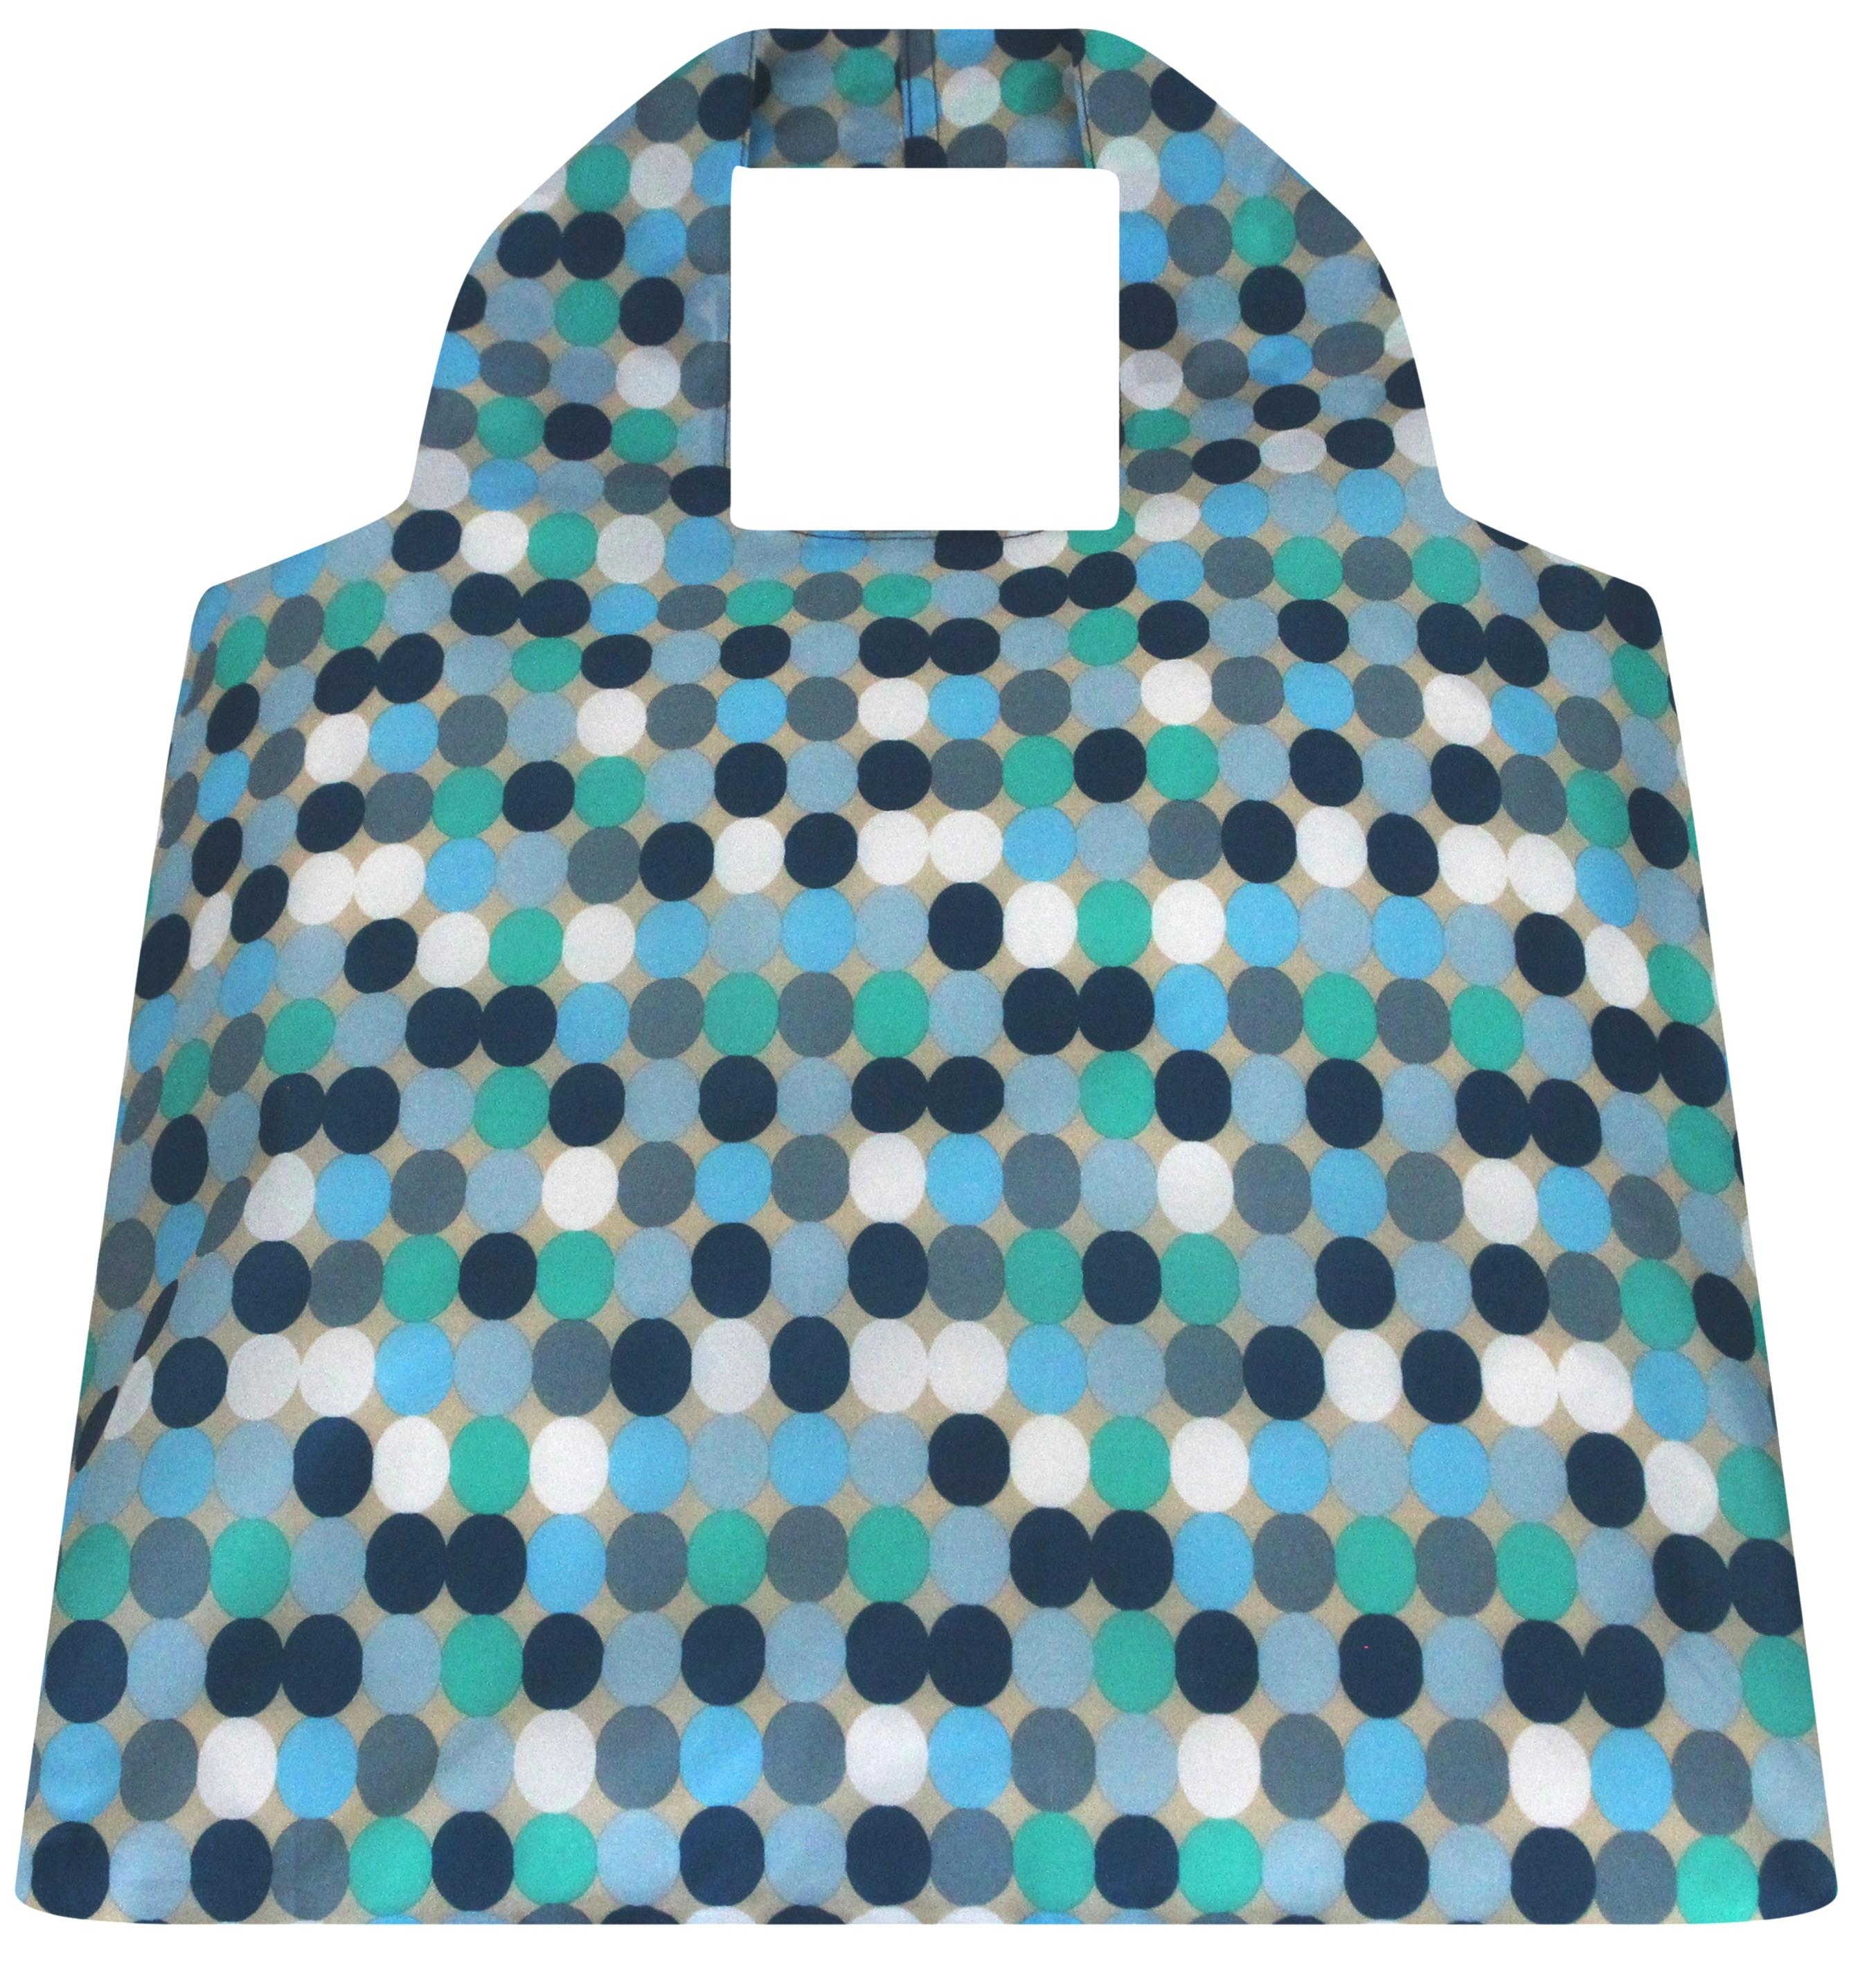 SAKitToMe ~ Blue Spots Design ~ Compact Bag by Envirotrend